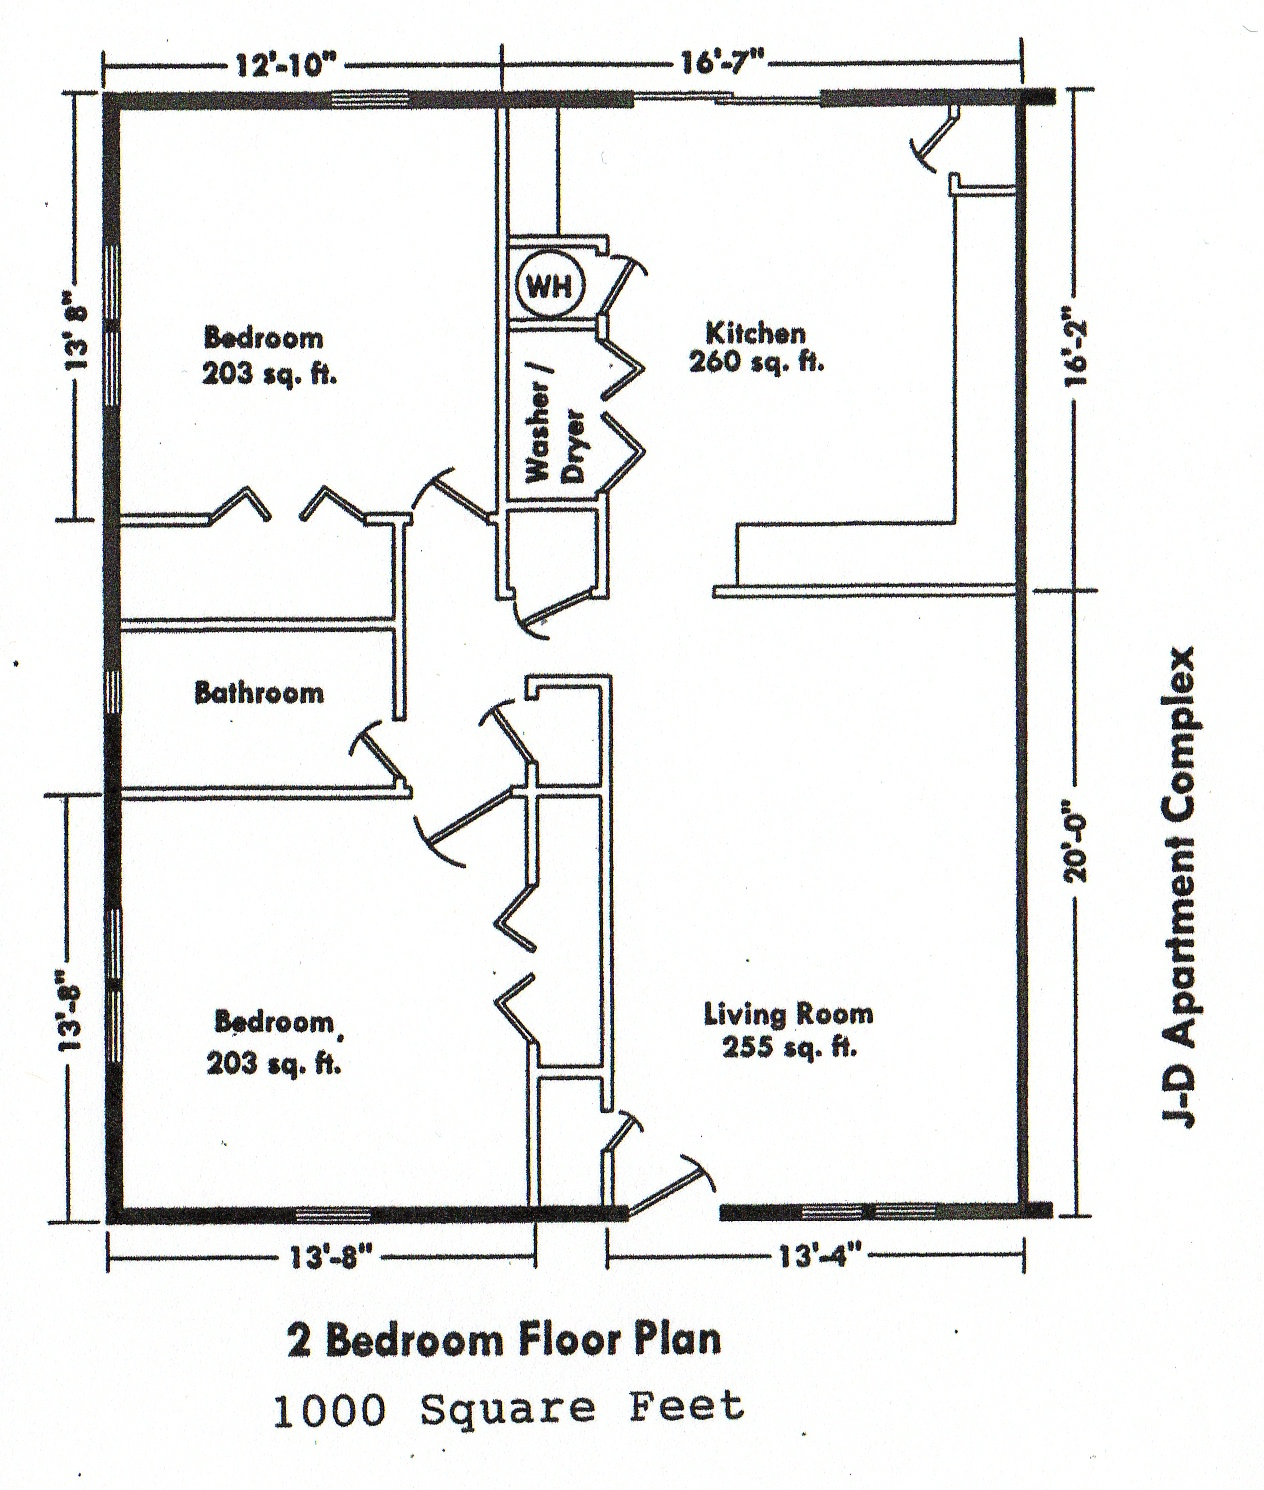 Modular home modular homes 2 bedroom floor plans - Plan of house with bed rooms ...